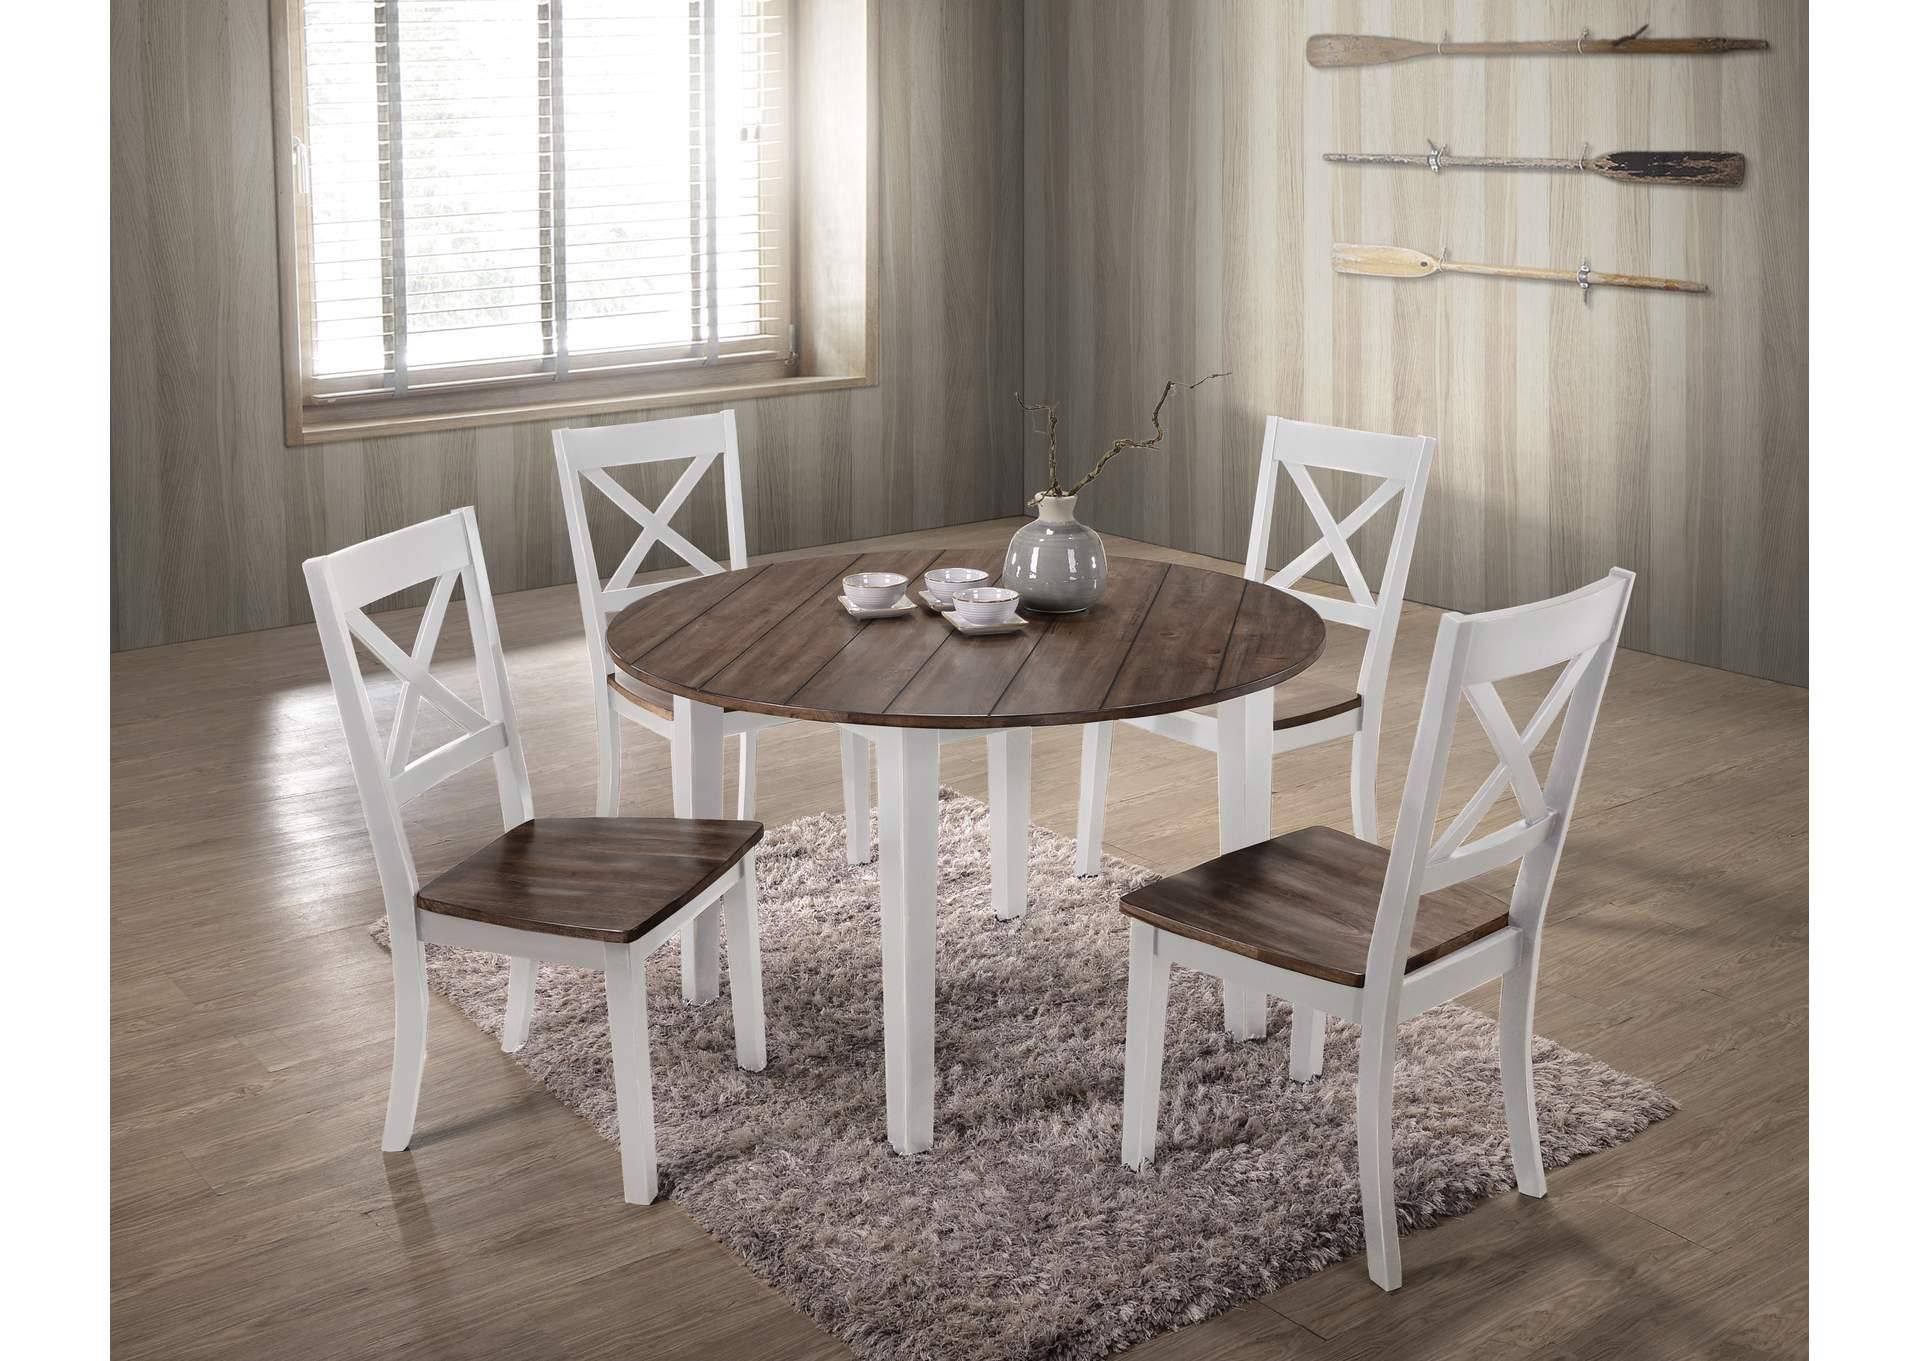 Silver Dining Table And Chairs, 5057 A La Carte White 5 Piece Drop Leaf Dining Set